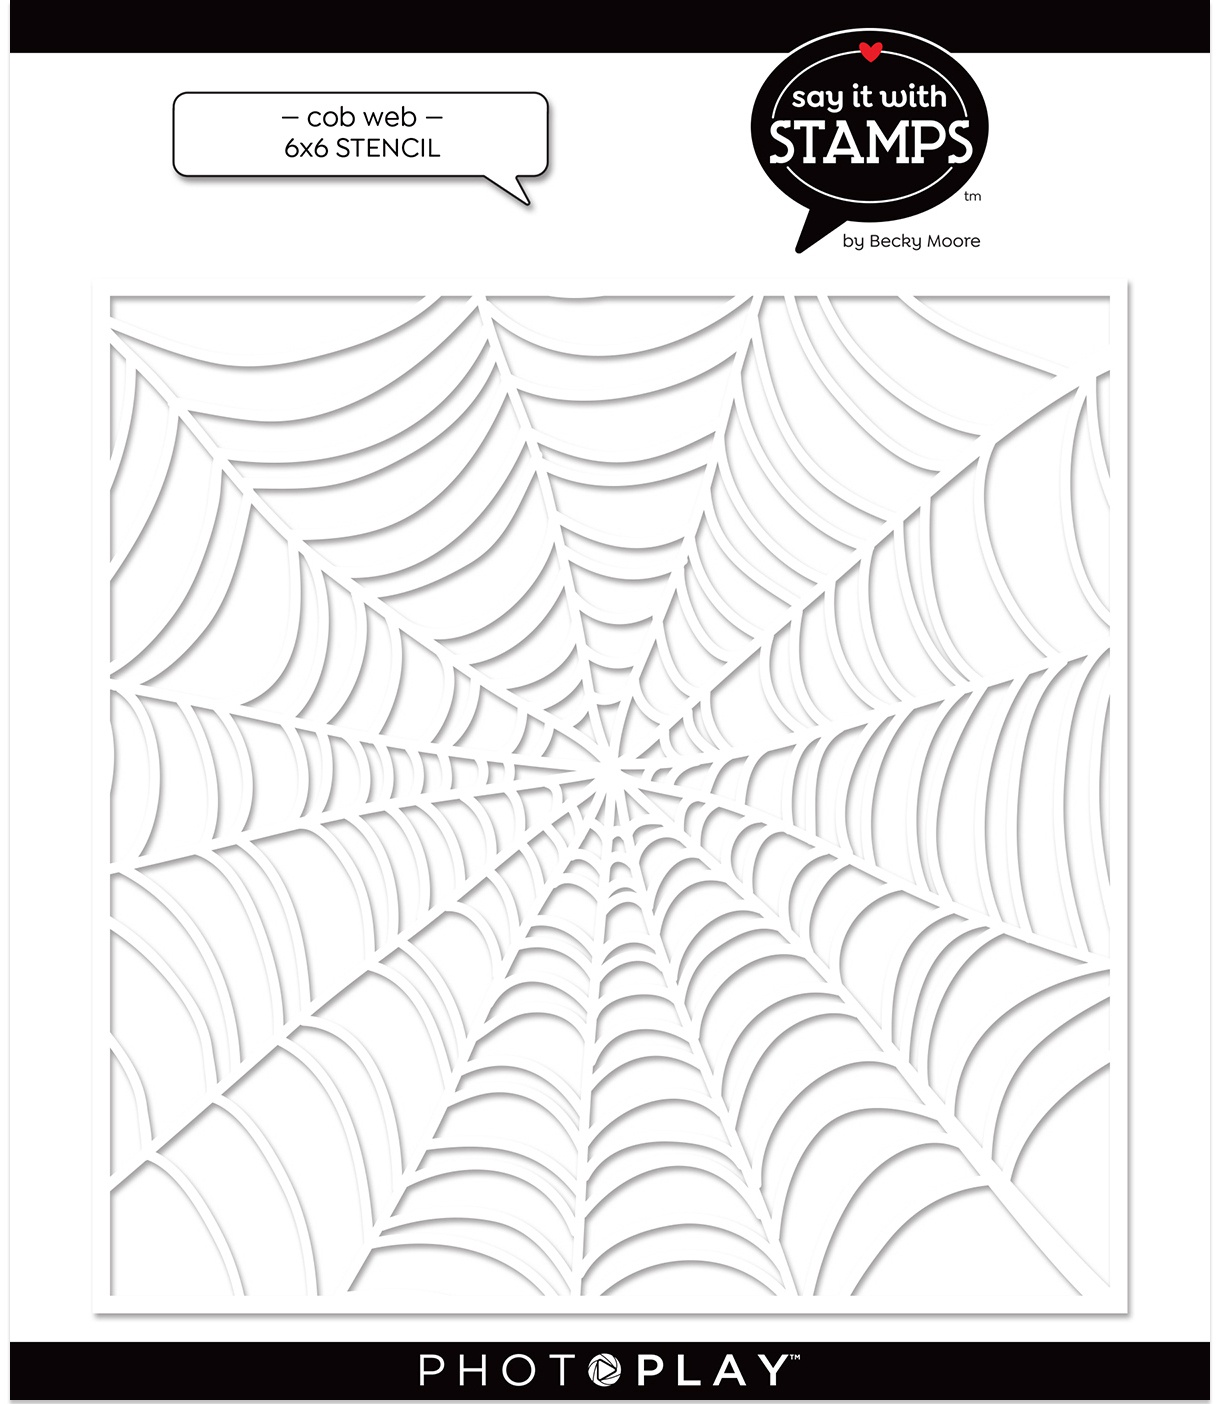 PhotoPlay Say It With Stamps Stencil - Cobweb